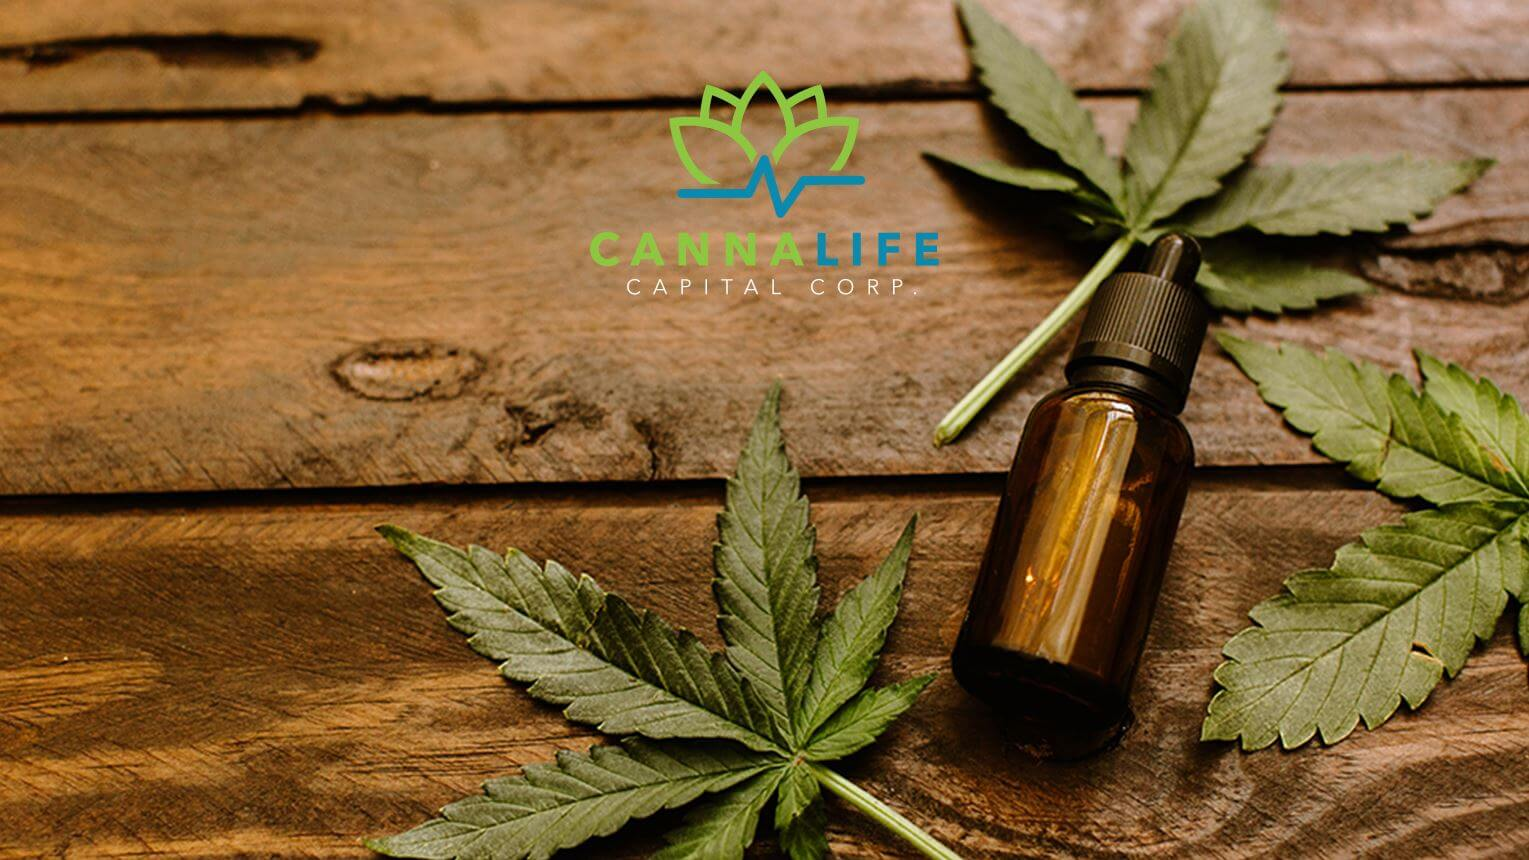 Cannalife Capital Corp 1